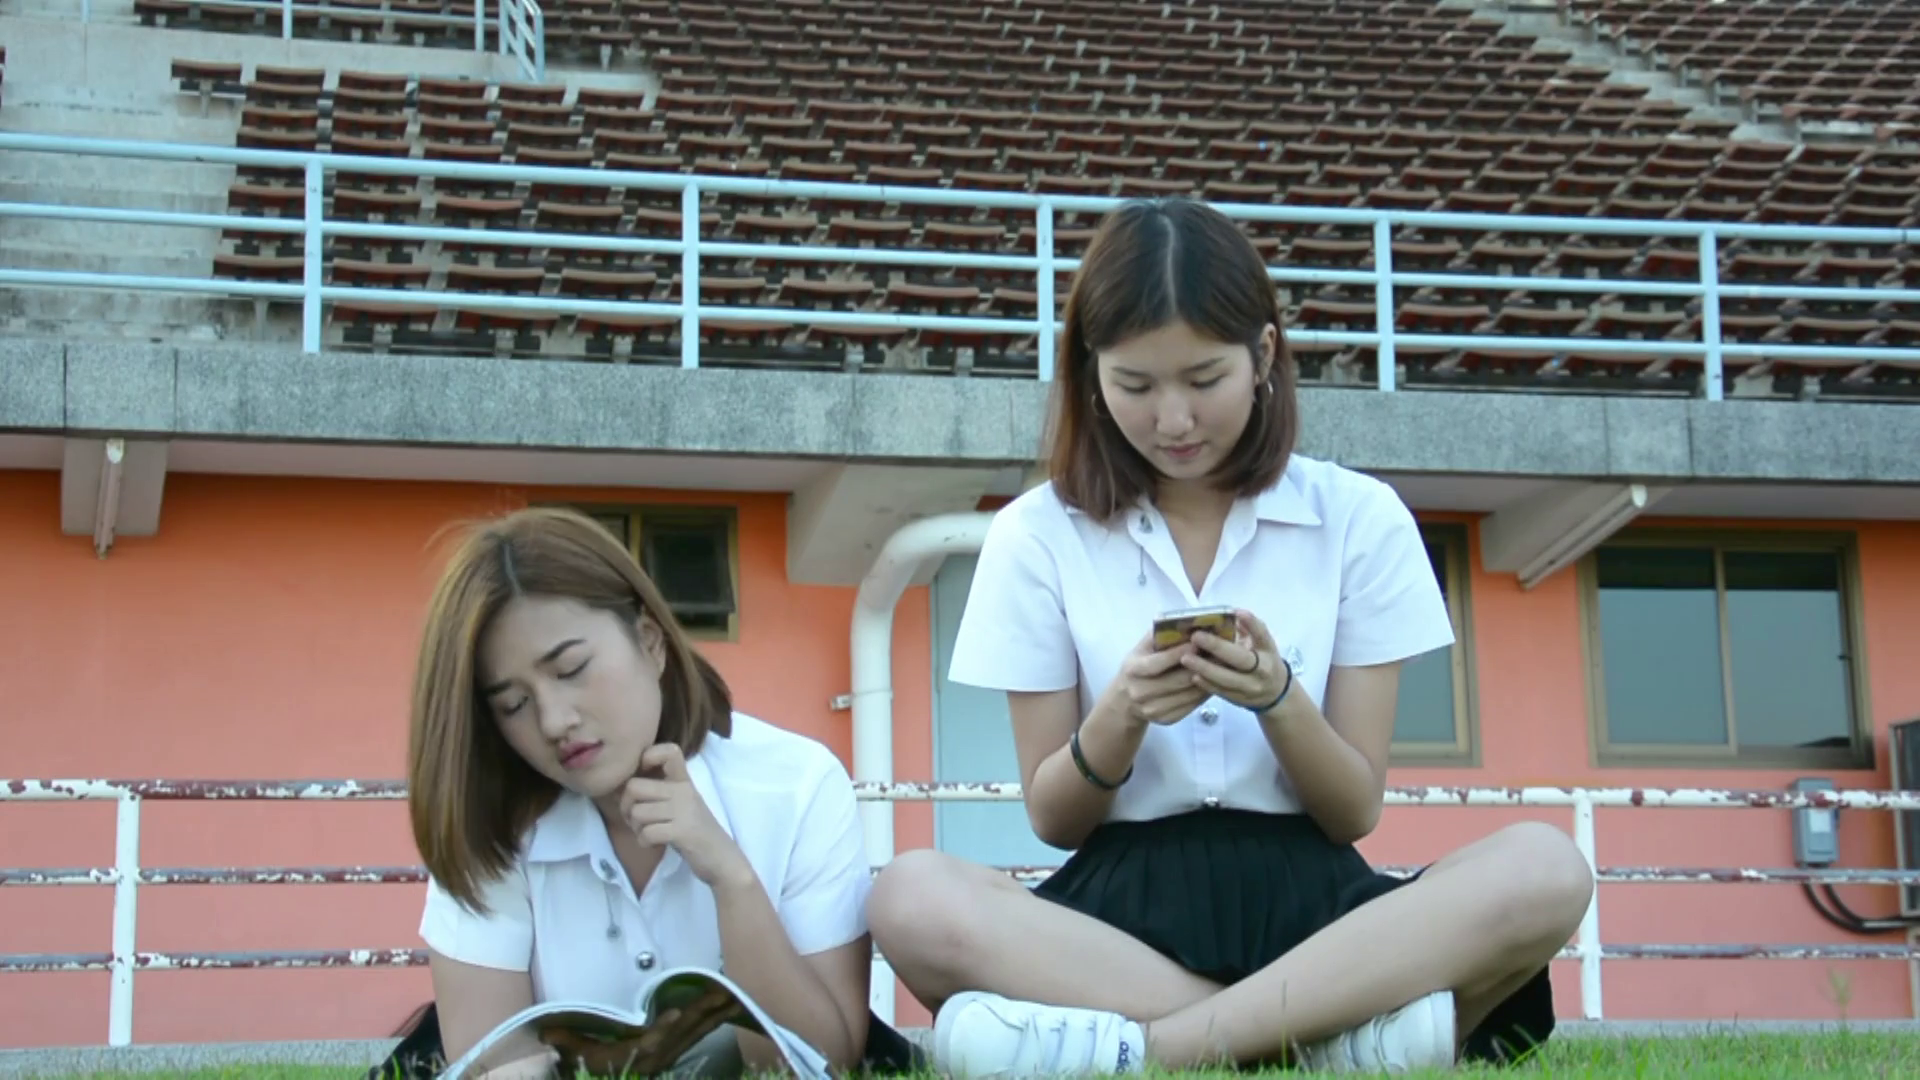 Cute Asian Thai college student girl in university uniform reading text  book and ask her friend that playing with mobile to explain what she donu0027t  PlusPng.com  - PNG HD Student Reading